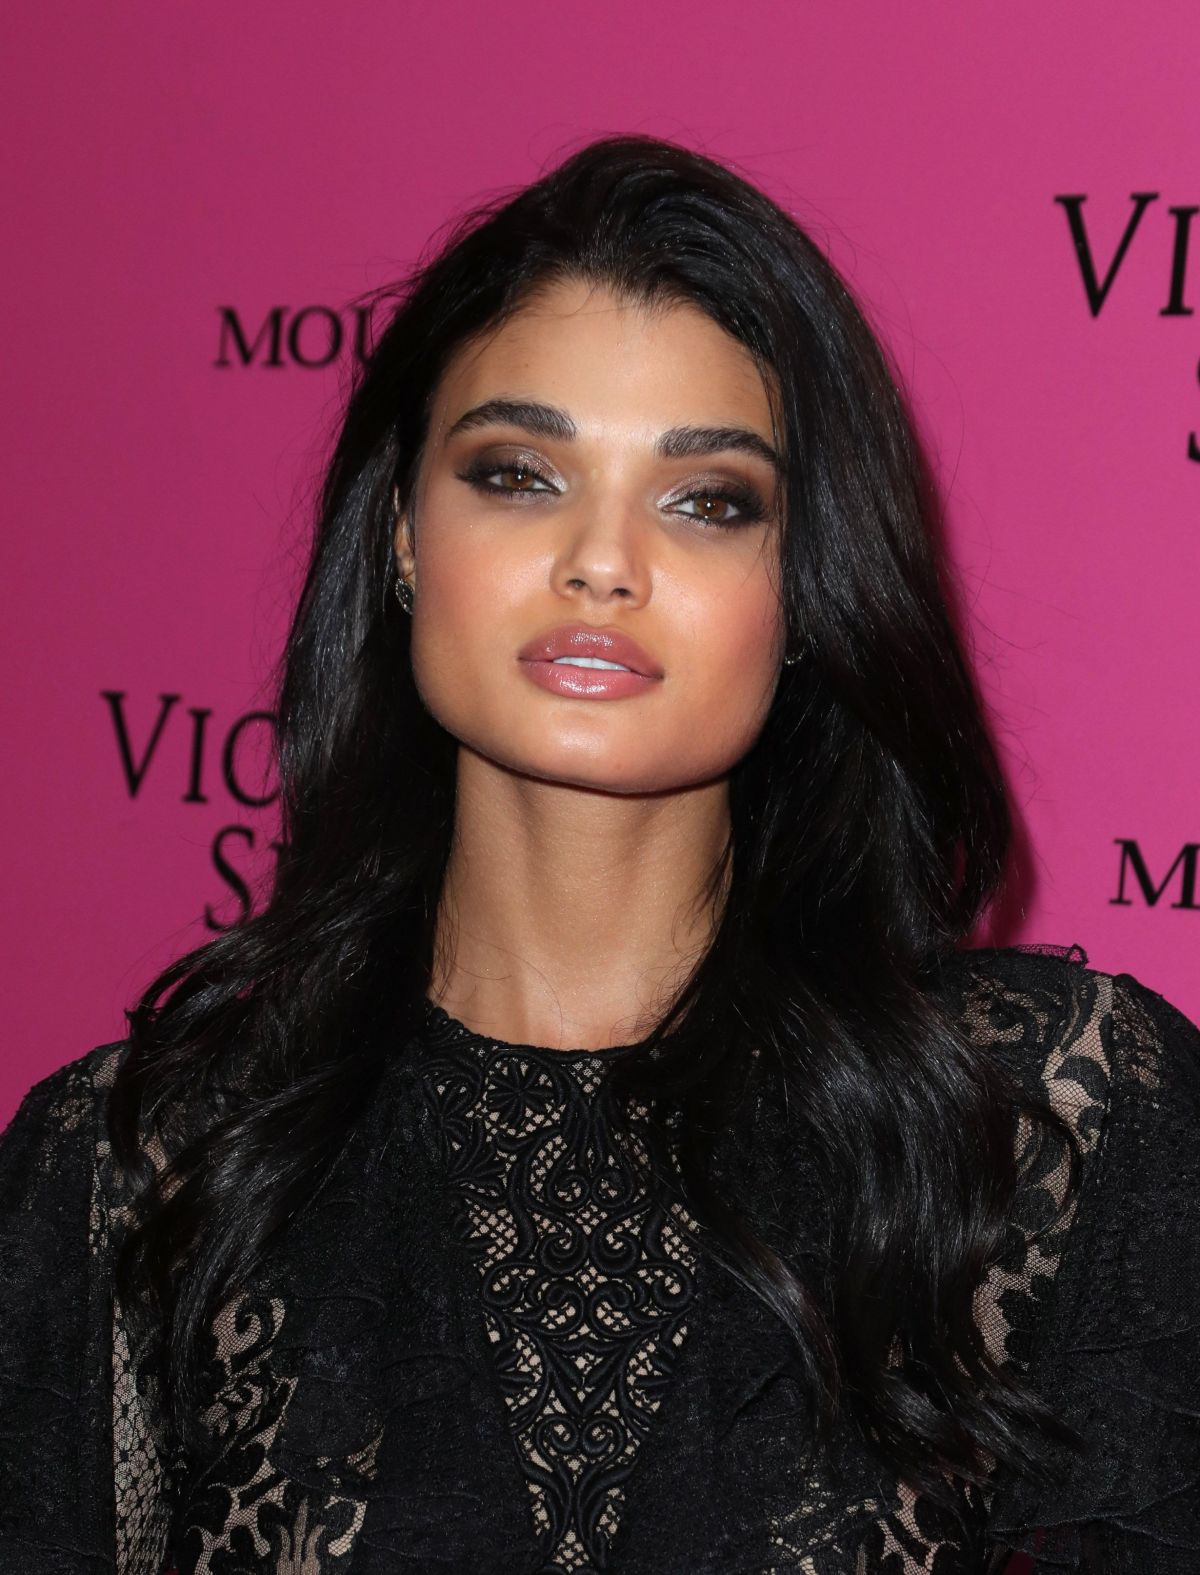 Pictures Daniela Braga naked (87 photos), Sexy, Fappening, Boobs, butt 2019